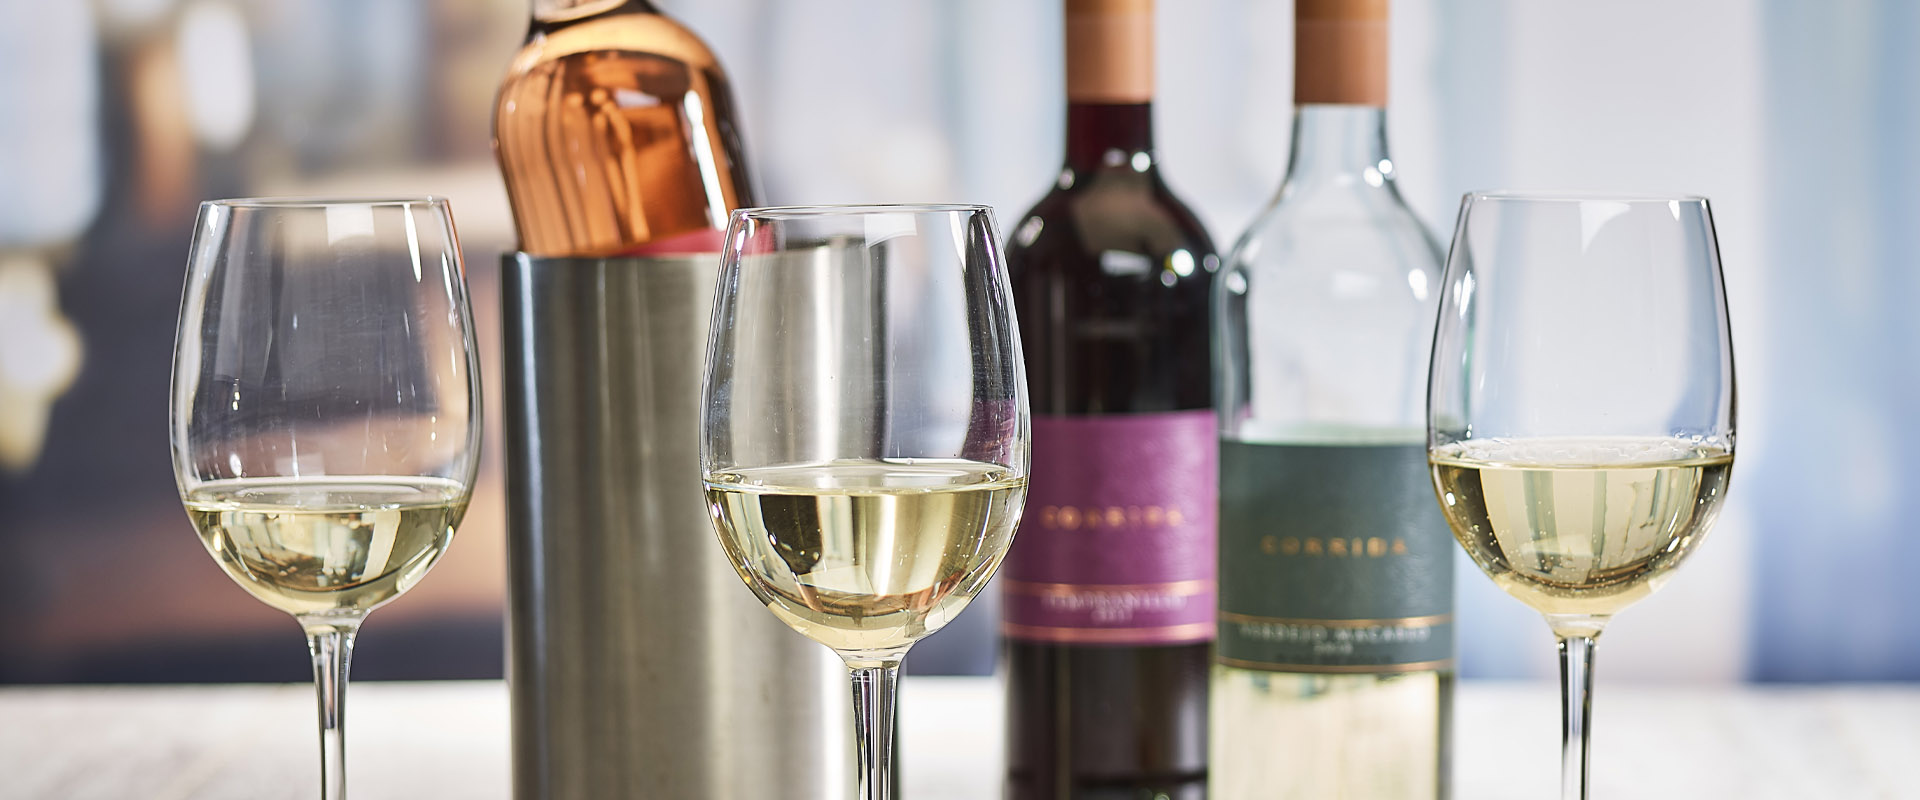 Pre-Pay for Wine this Christmas at The Cricketers